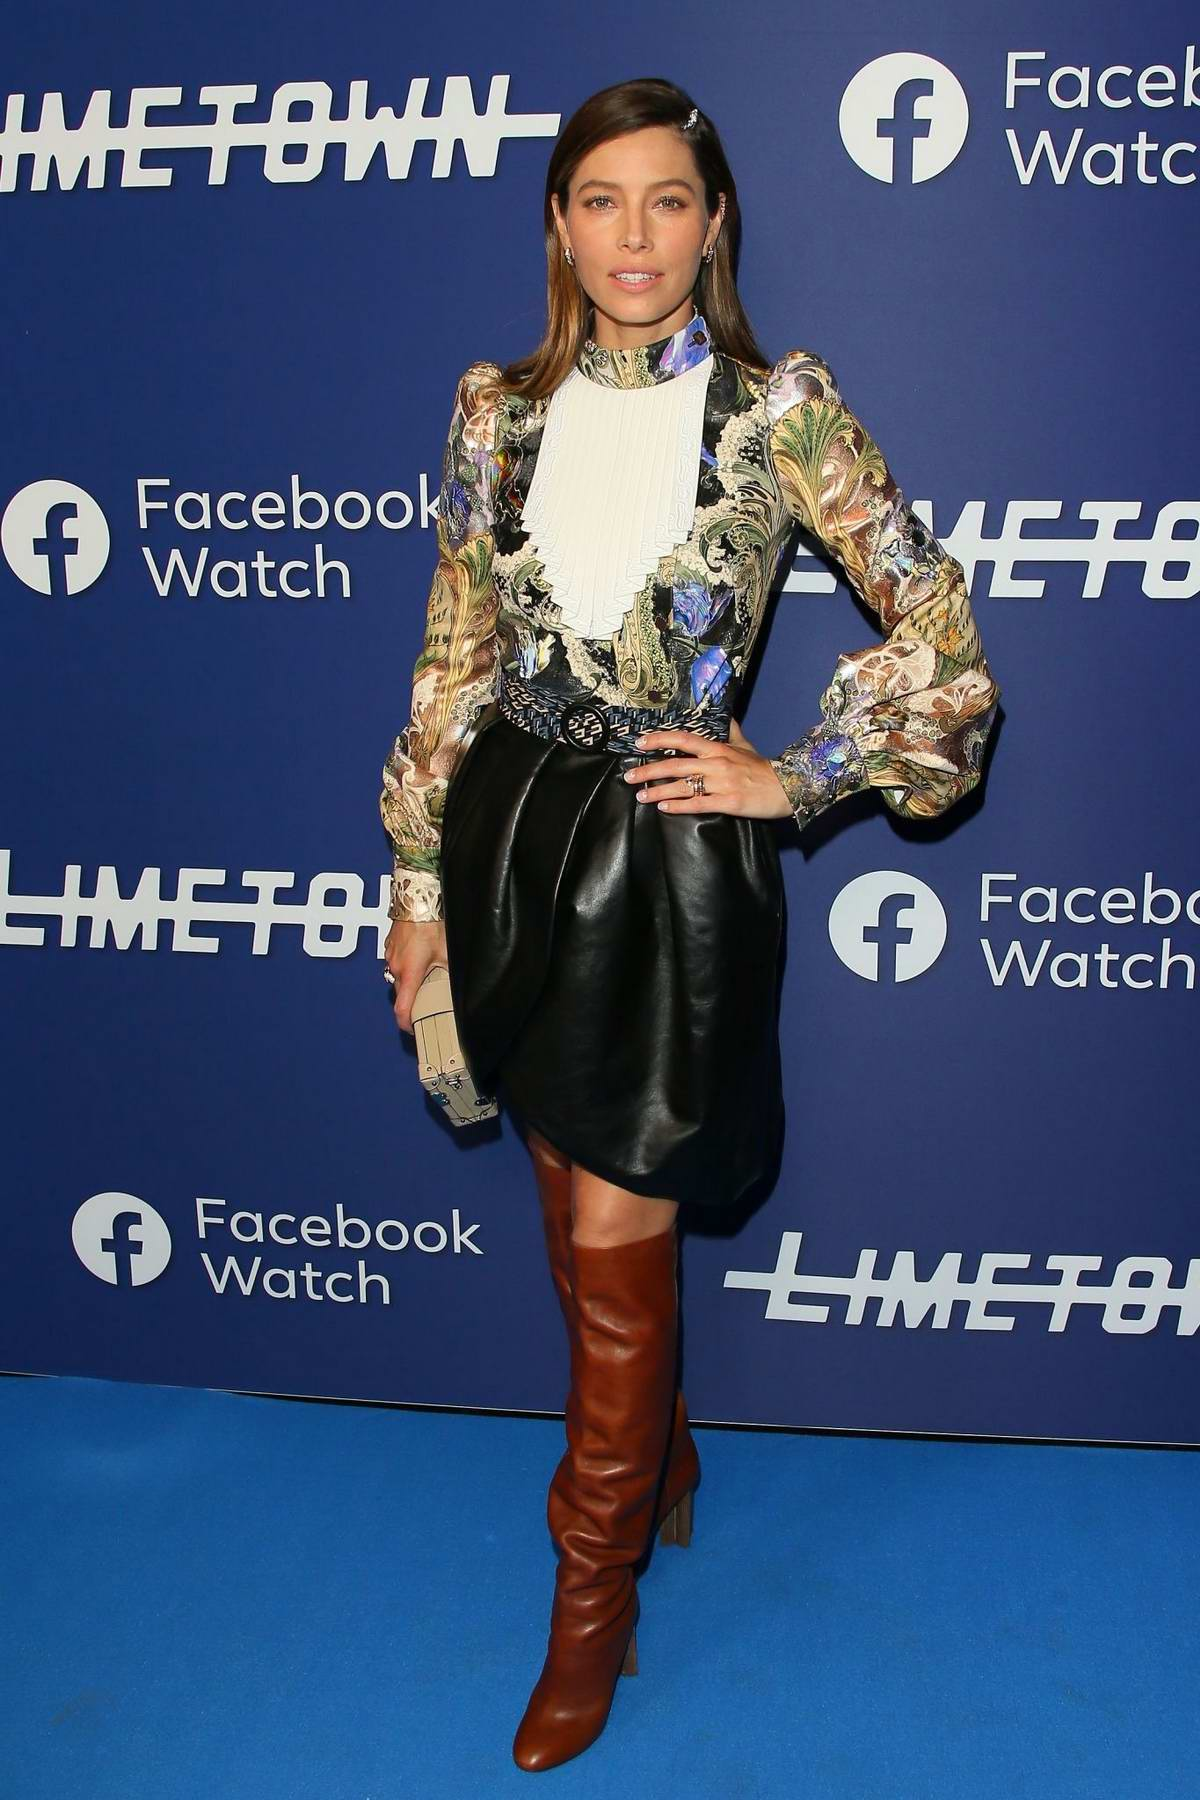 Jessica Biel attends a photocall for Facebook Watch's 'Limetown' at The Hollywood Athletic Club in Los Angeles